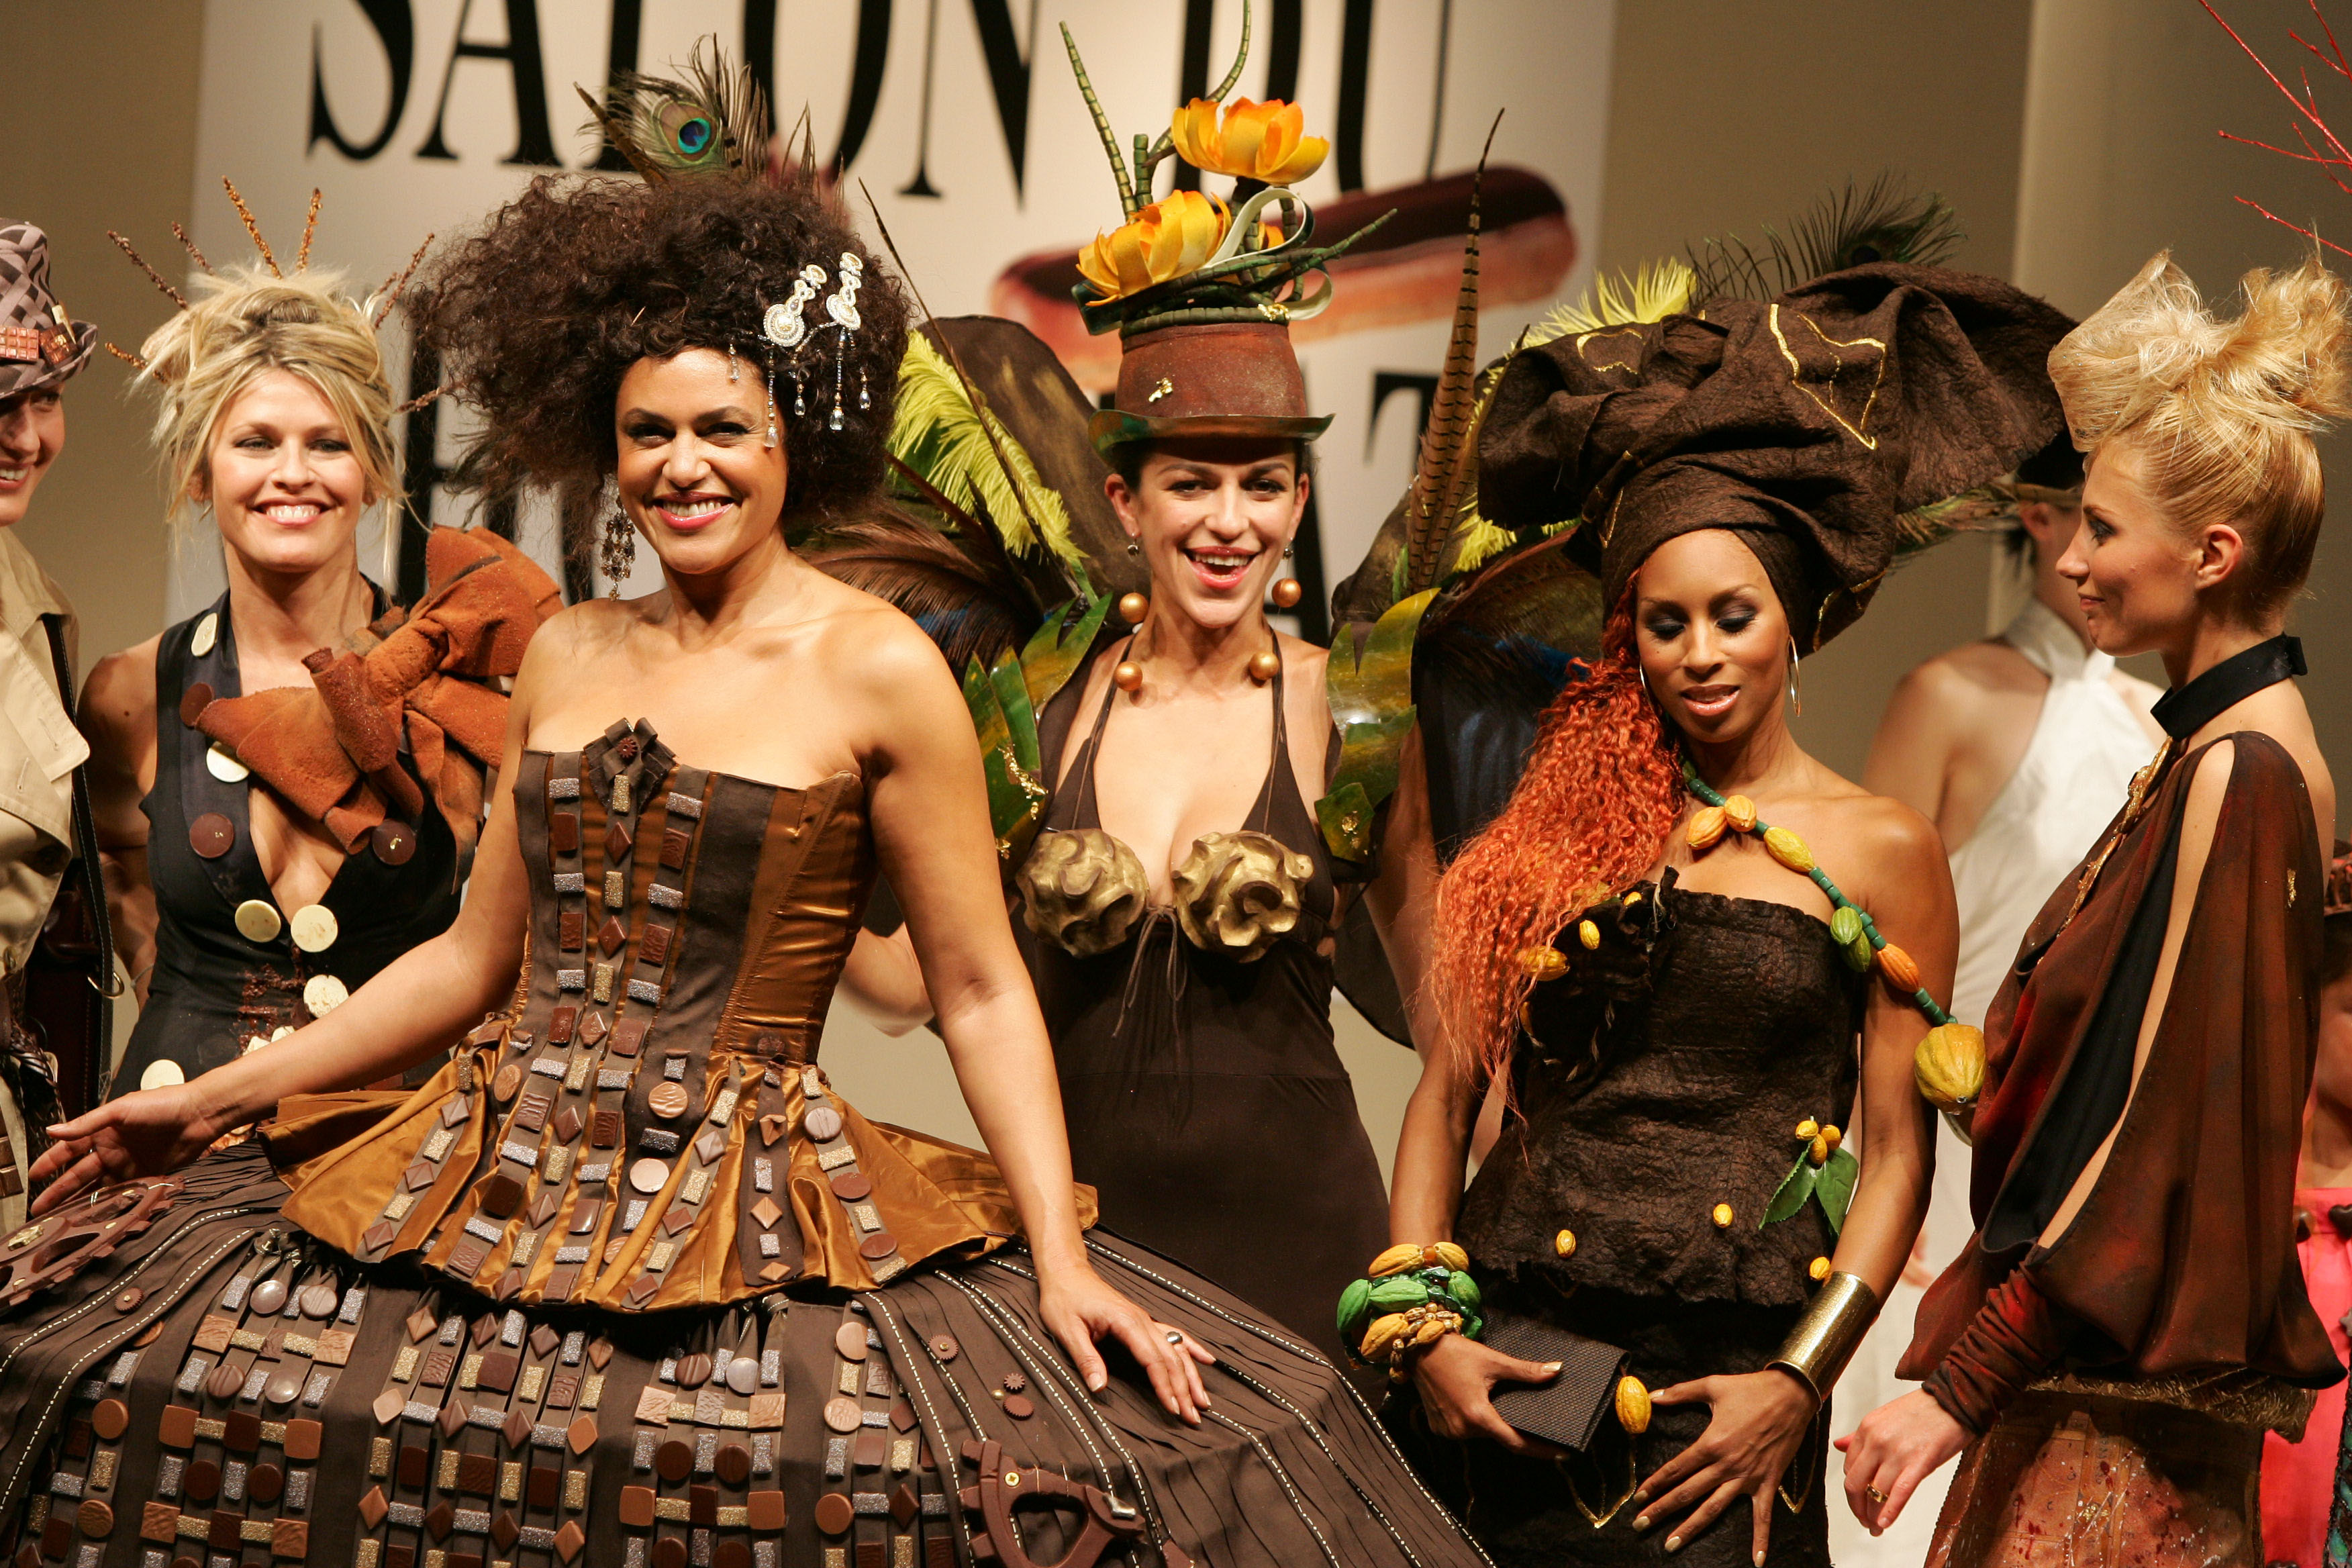 Virginie-Stucki-Grigny-Salon-Du-Chocolat-Viktor-Lazlo-People